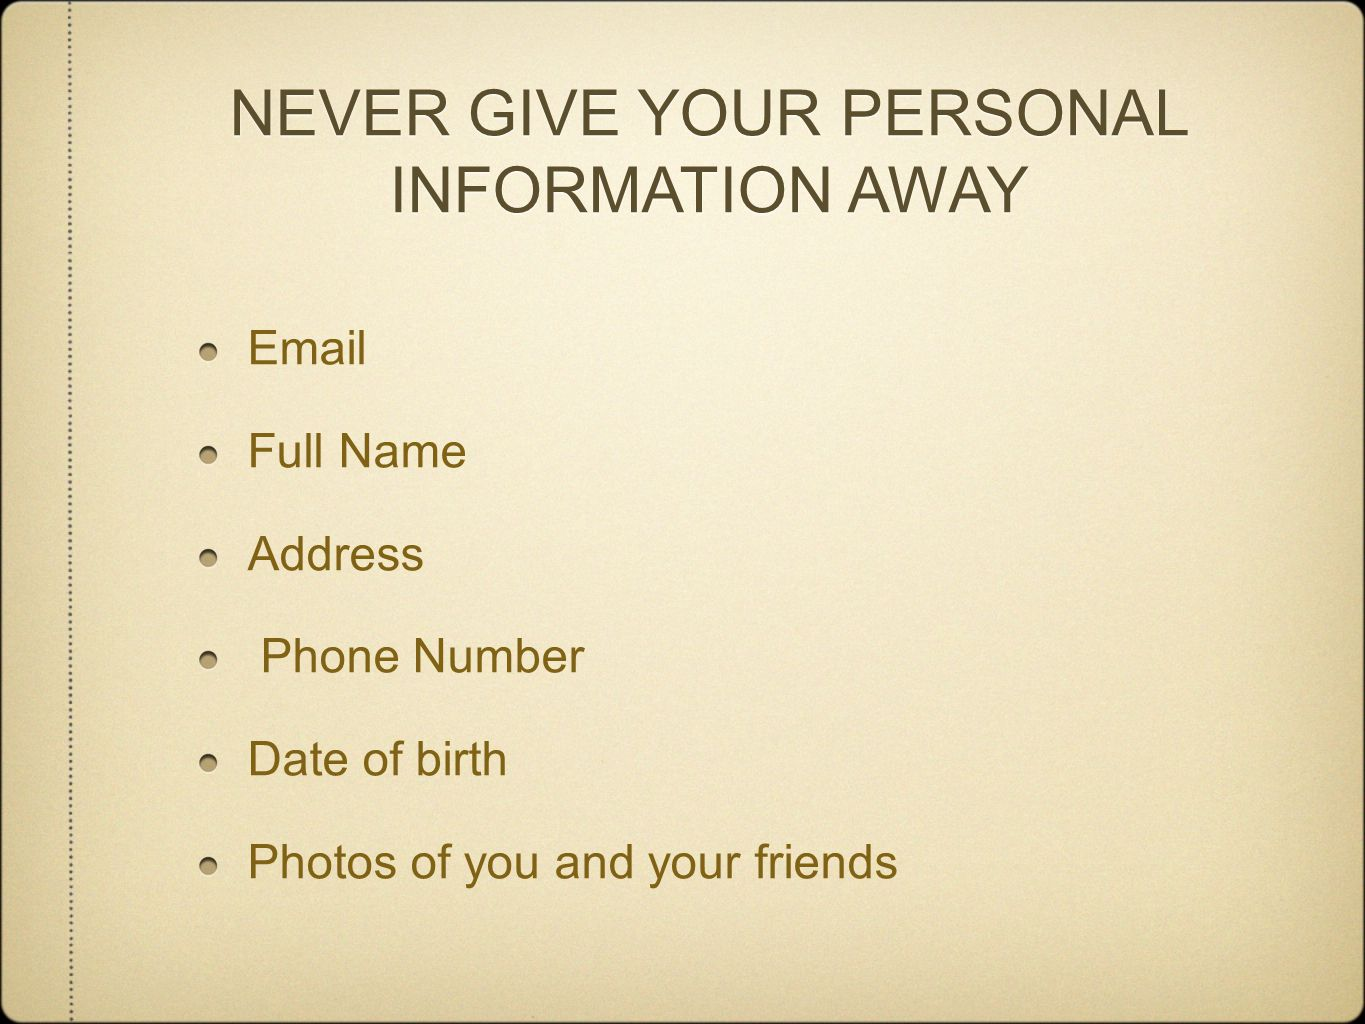 NEVER GIVE YOUR PERSONAL INFORMATION AWAY